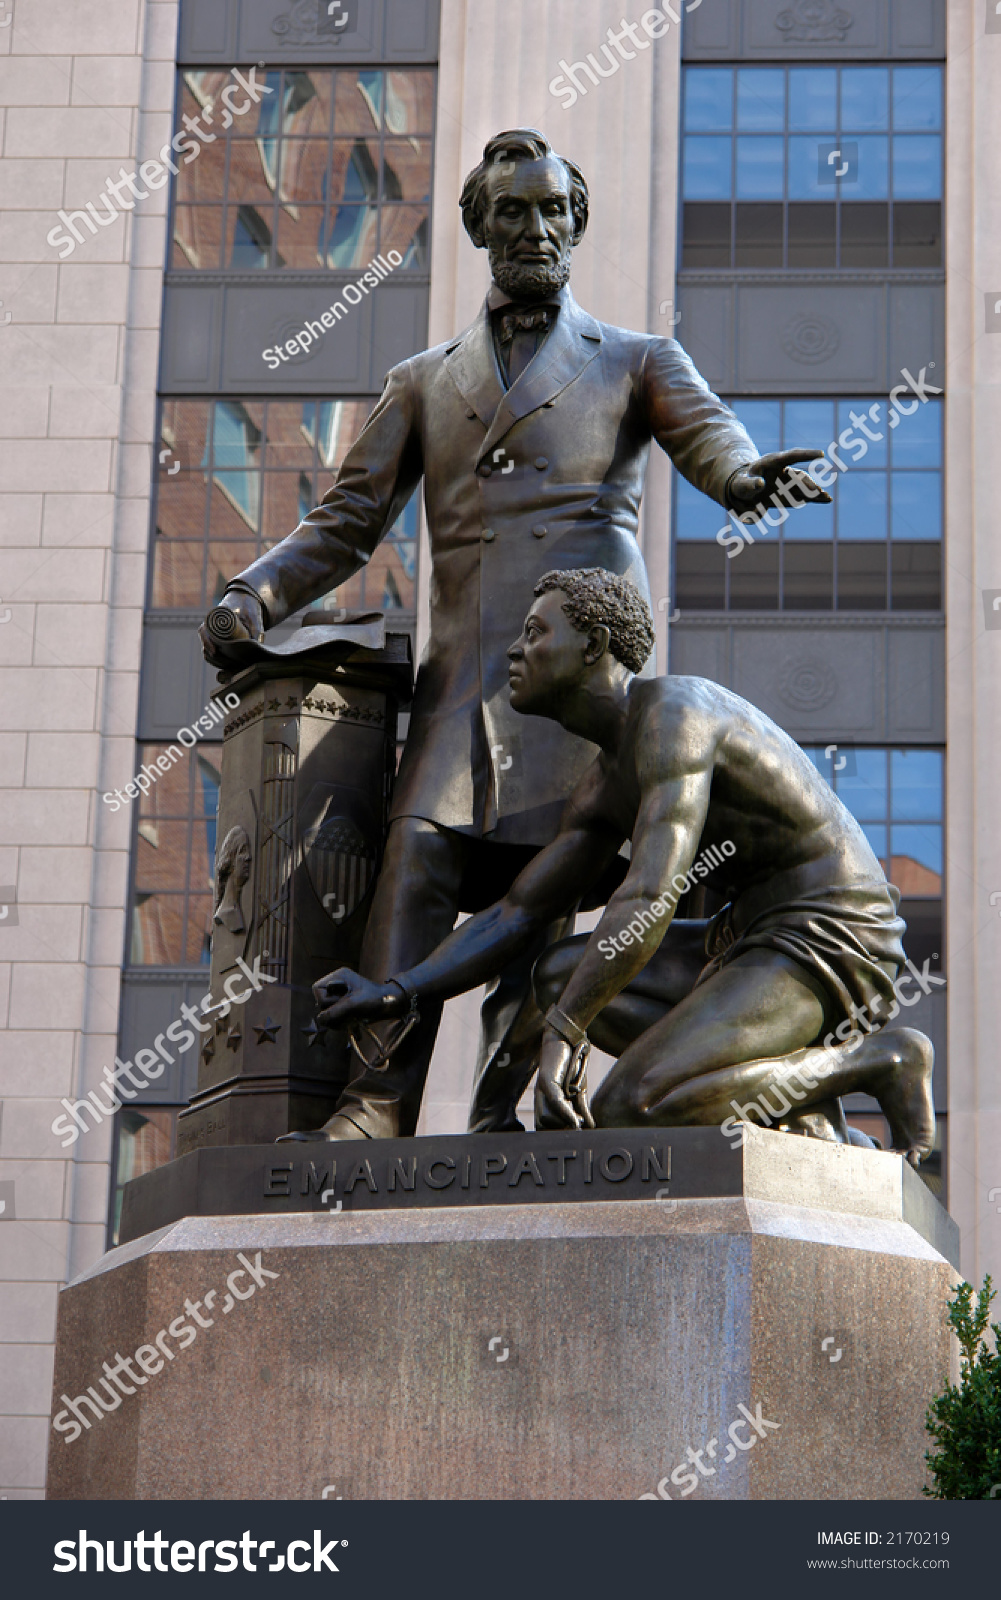 [Image: stock-photo-statue-of-abe-lincoln-freein...170219.jpg]